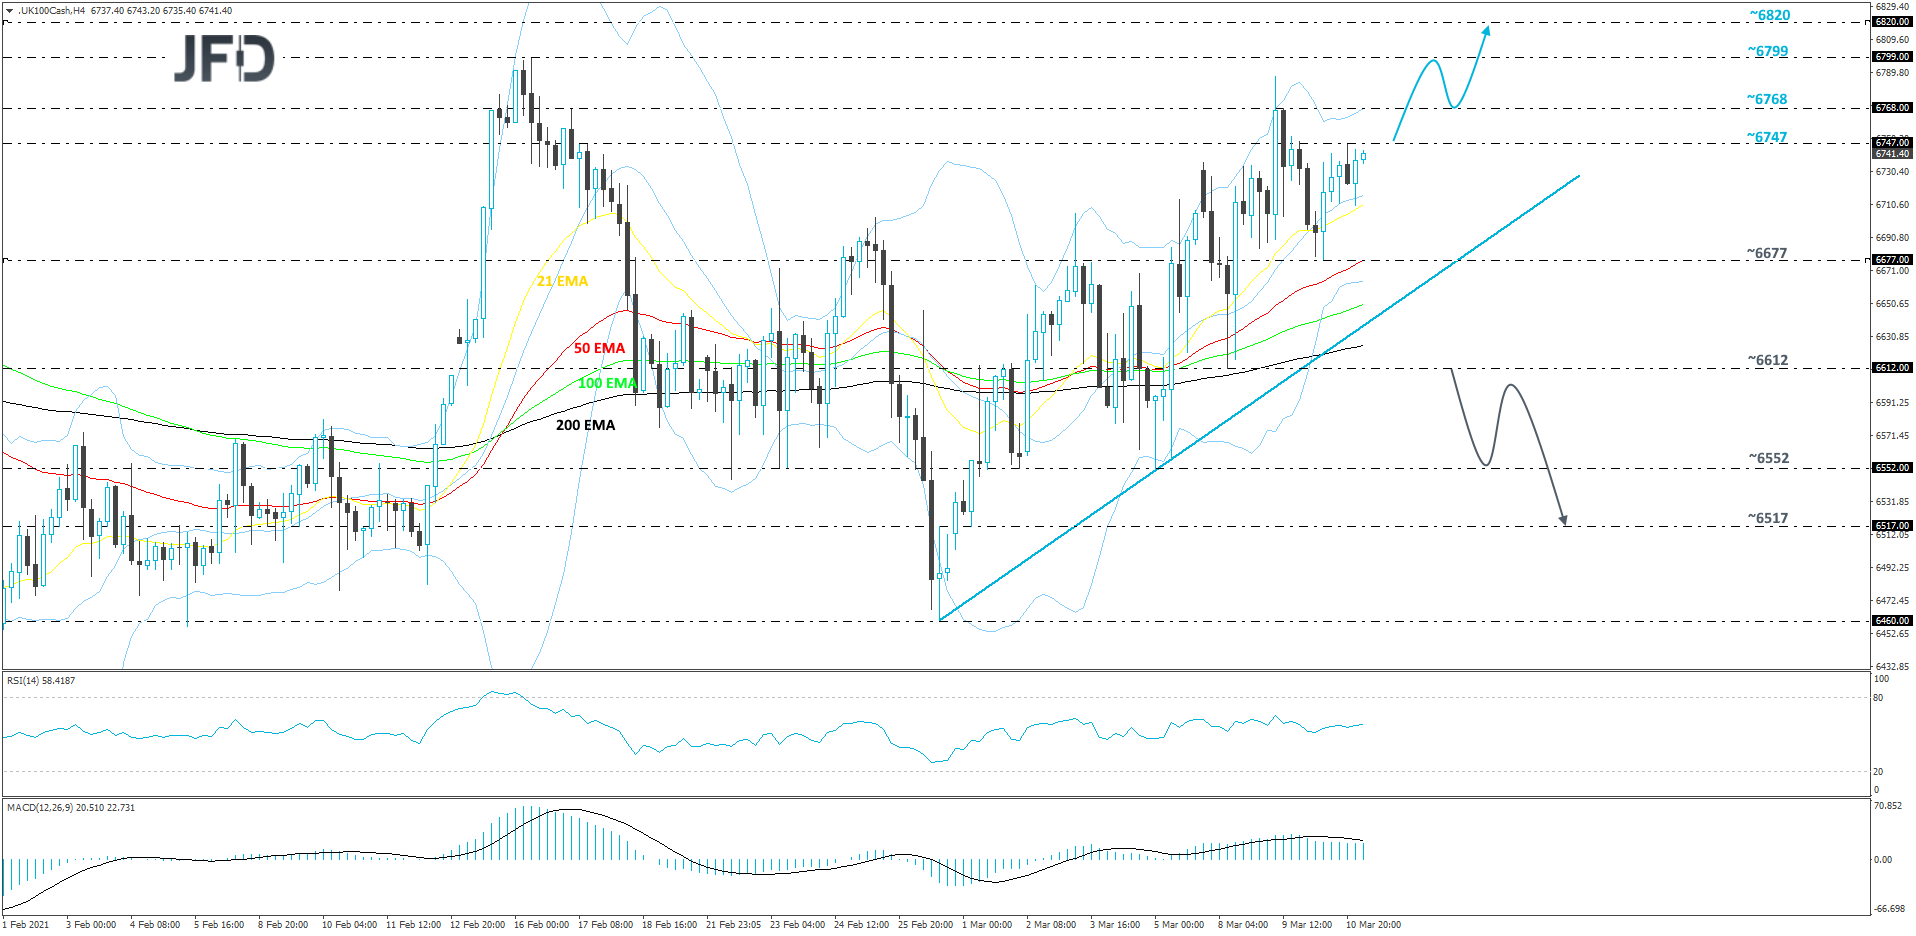 FTSE 100 cash index 4-hour chart technical analysis